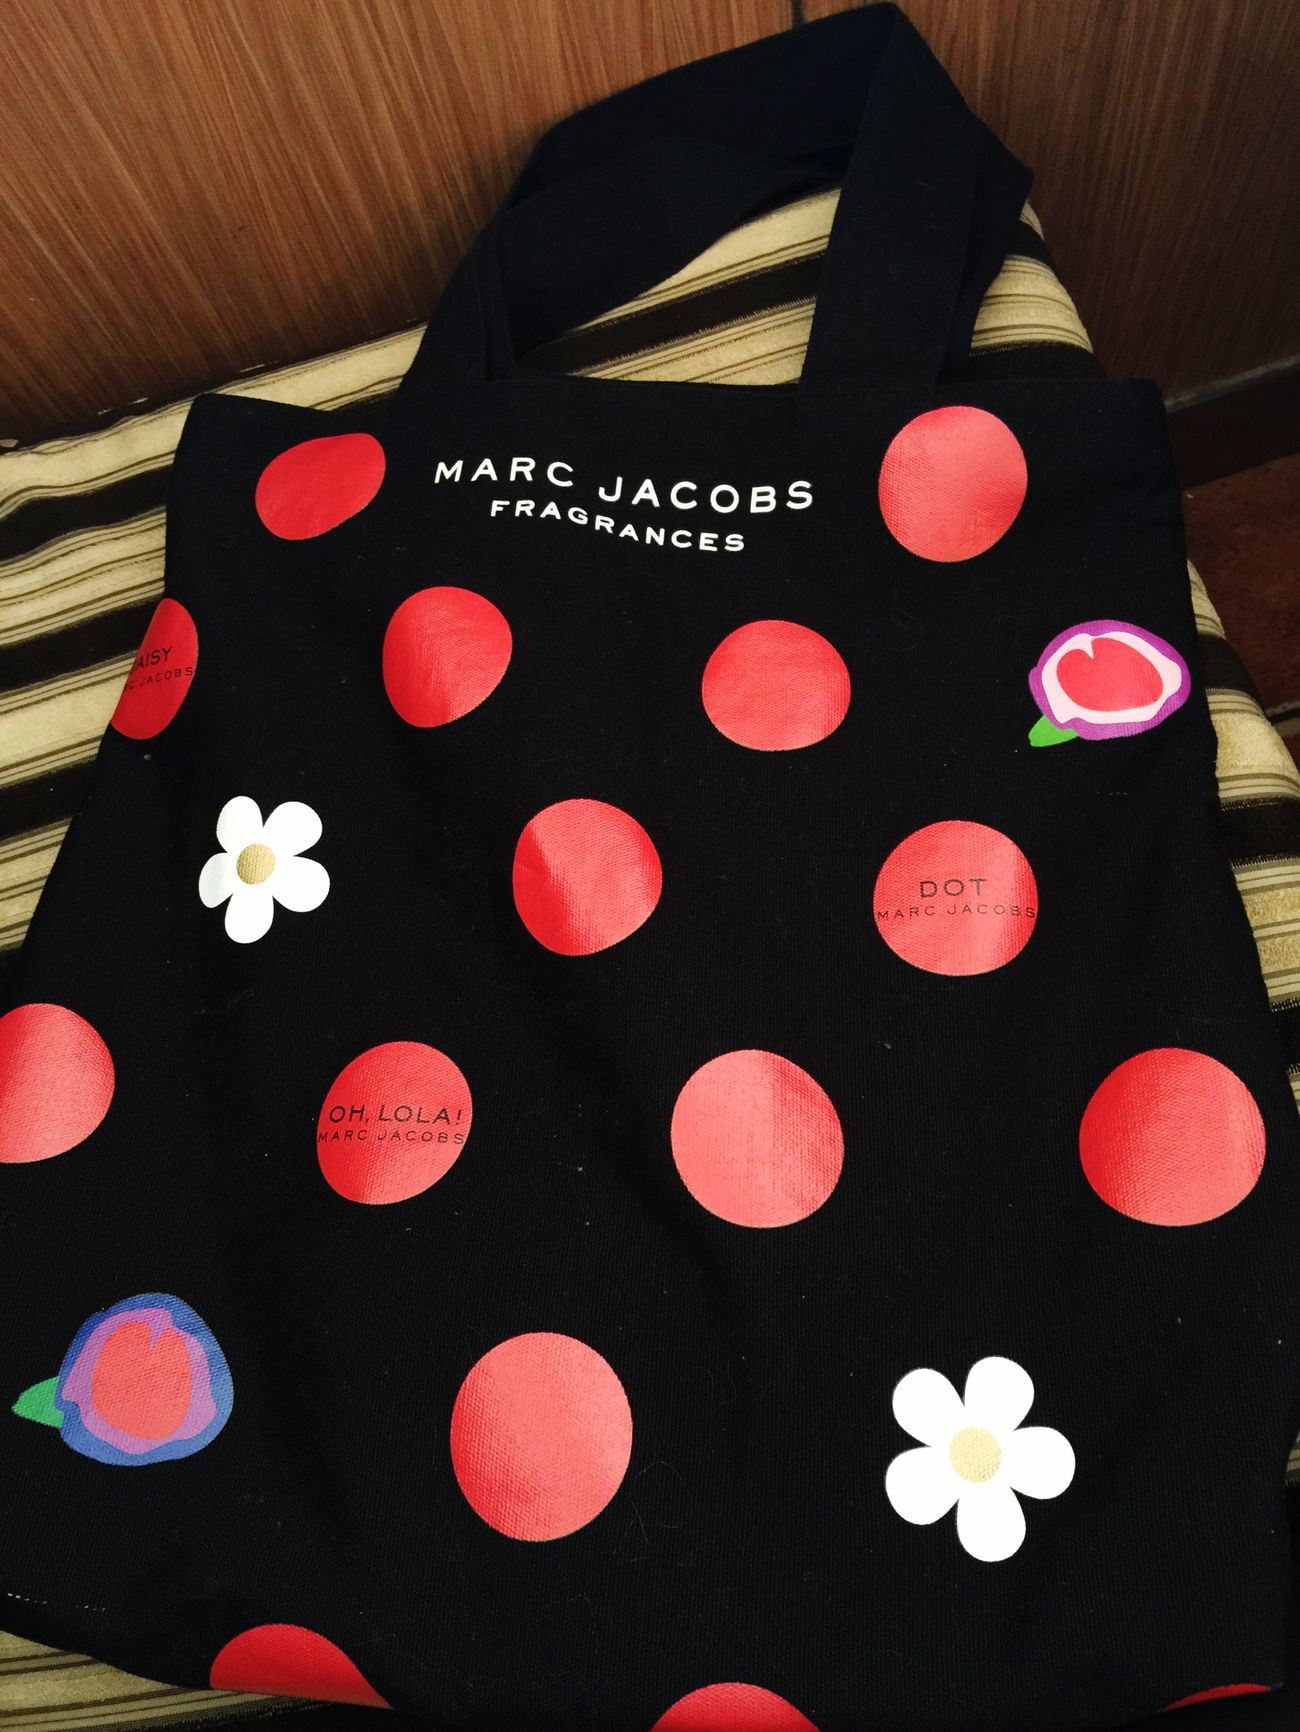 Bag Handbag  MarcJacobs